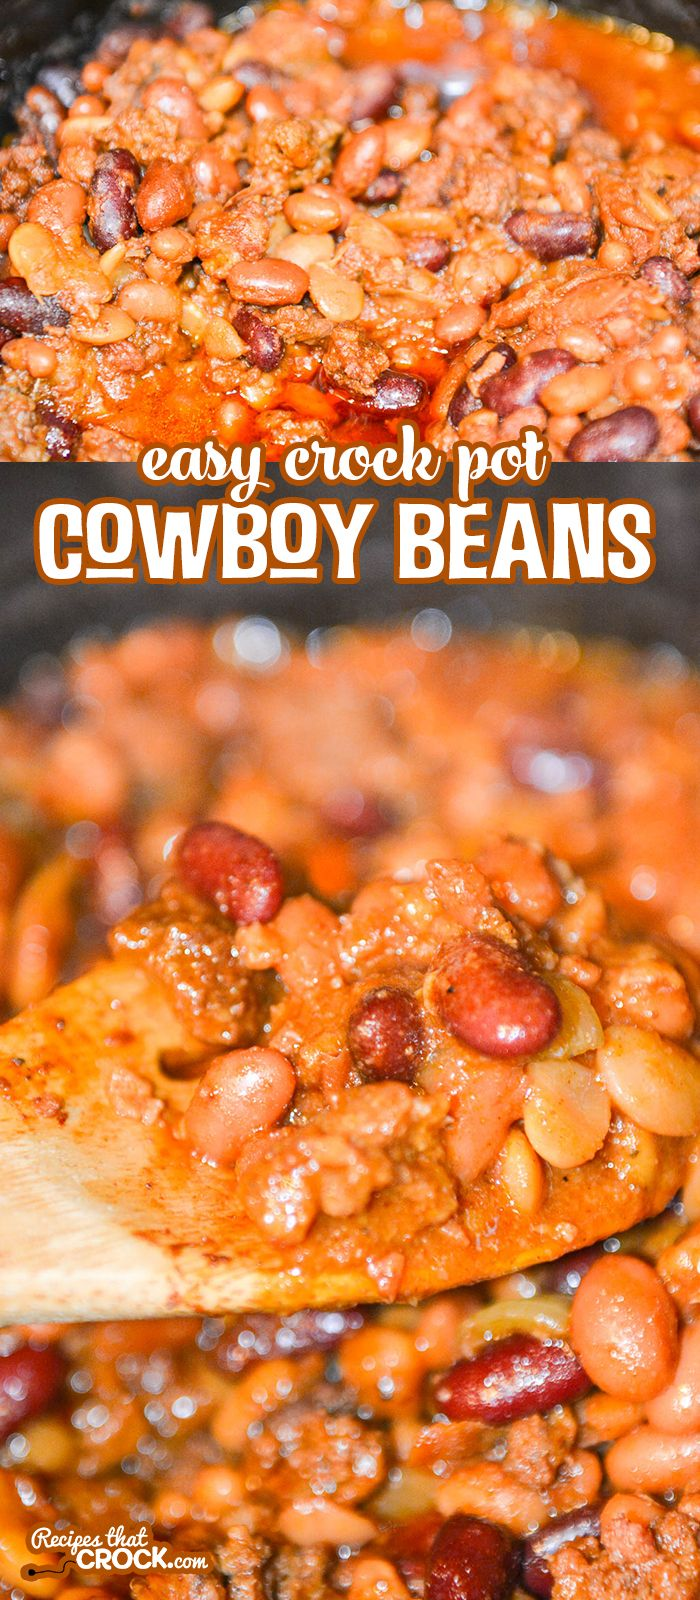 These Easy Crock Pot Cowboy Beans Are Fantastic As A Flavorful Side